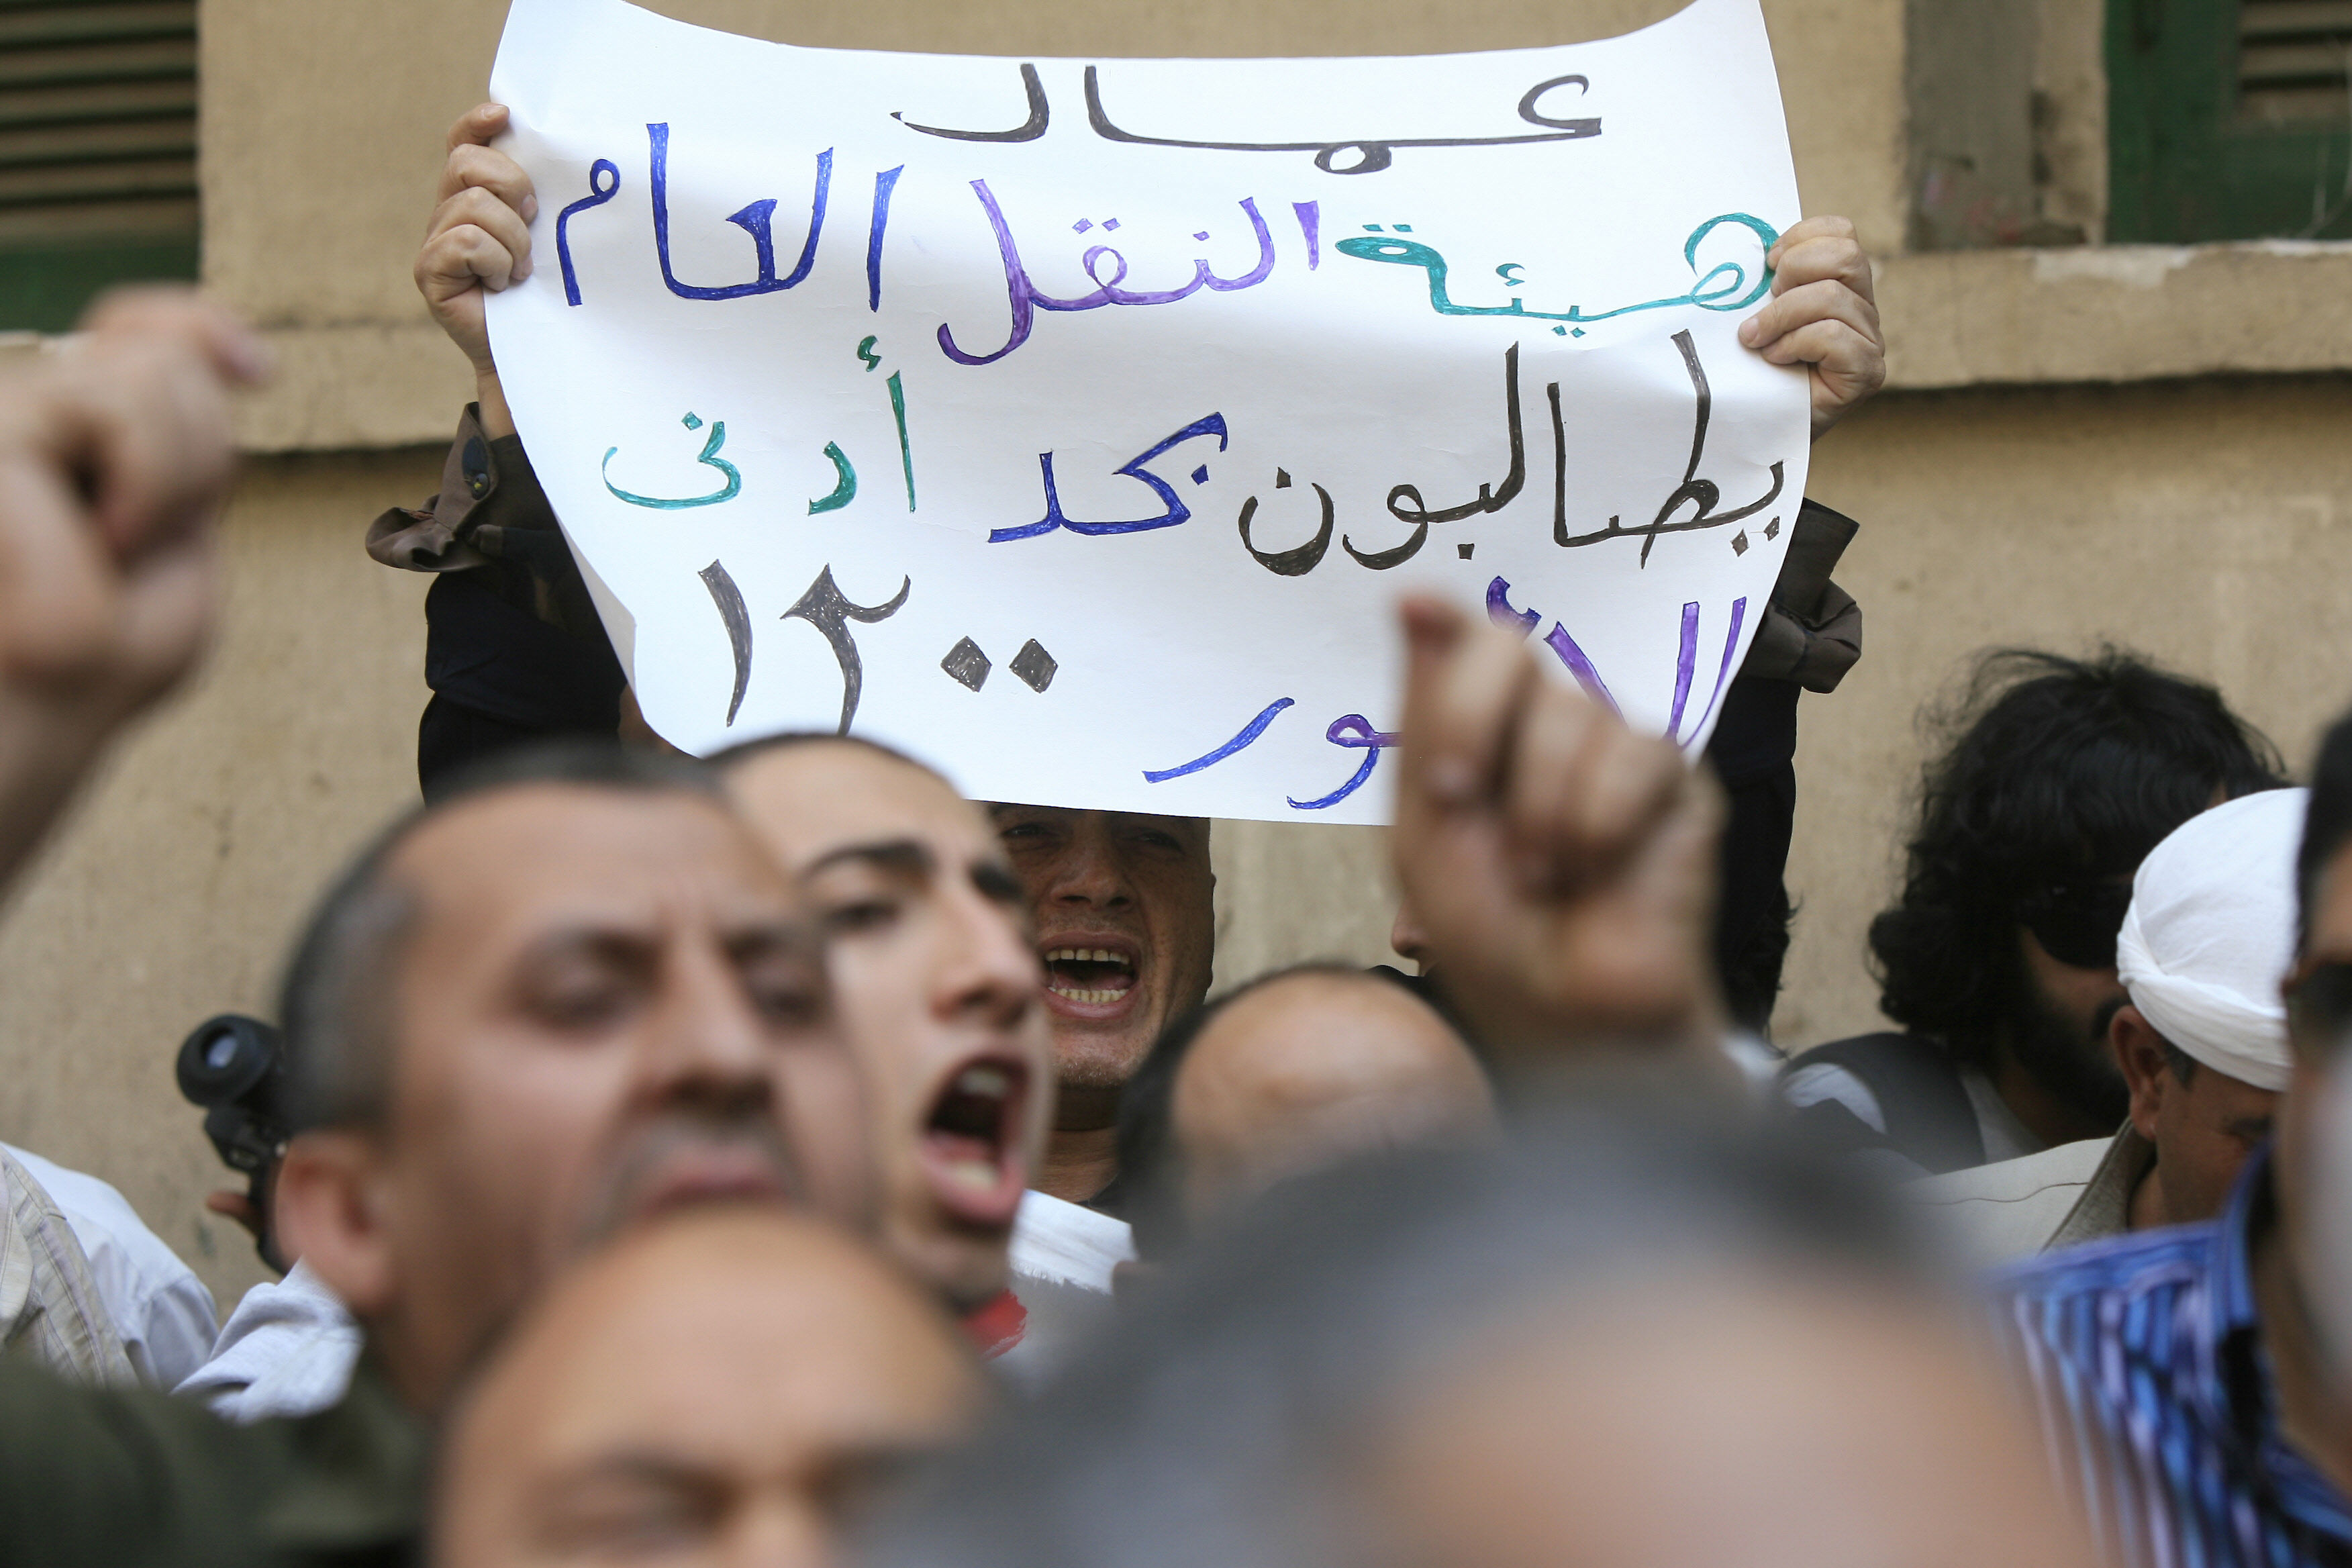 An Egyptian man holds a sign calling for a higher minimum wage during a protest outside the parliament building in downtown Cairo on May 2, 2010.  Several demonstrations were staged in years leading to the 2011 revolution in demand of a monthly minimum wage of 1,200 pounds. The government's decision, although aimed to placate workers, was met with decry as living expenses soared, and a maximum ceiling for public officials was not set.  (AFP FILE PHOTO/KHALED DESOUKI)